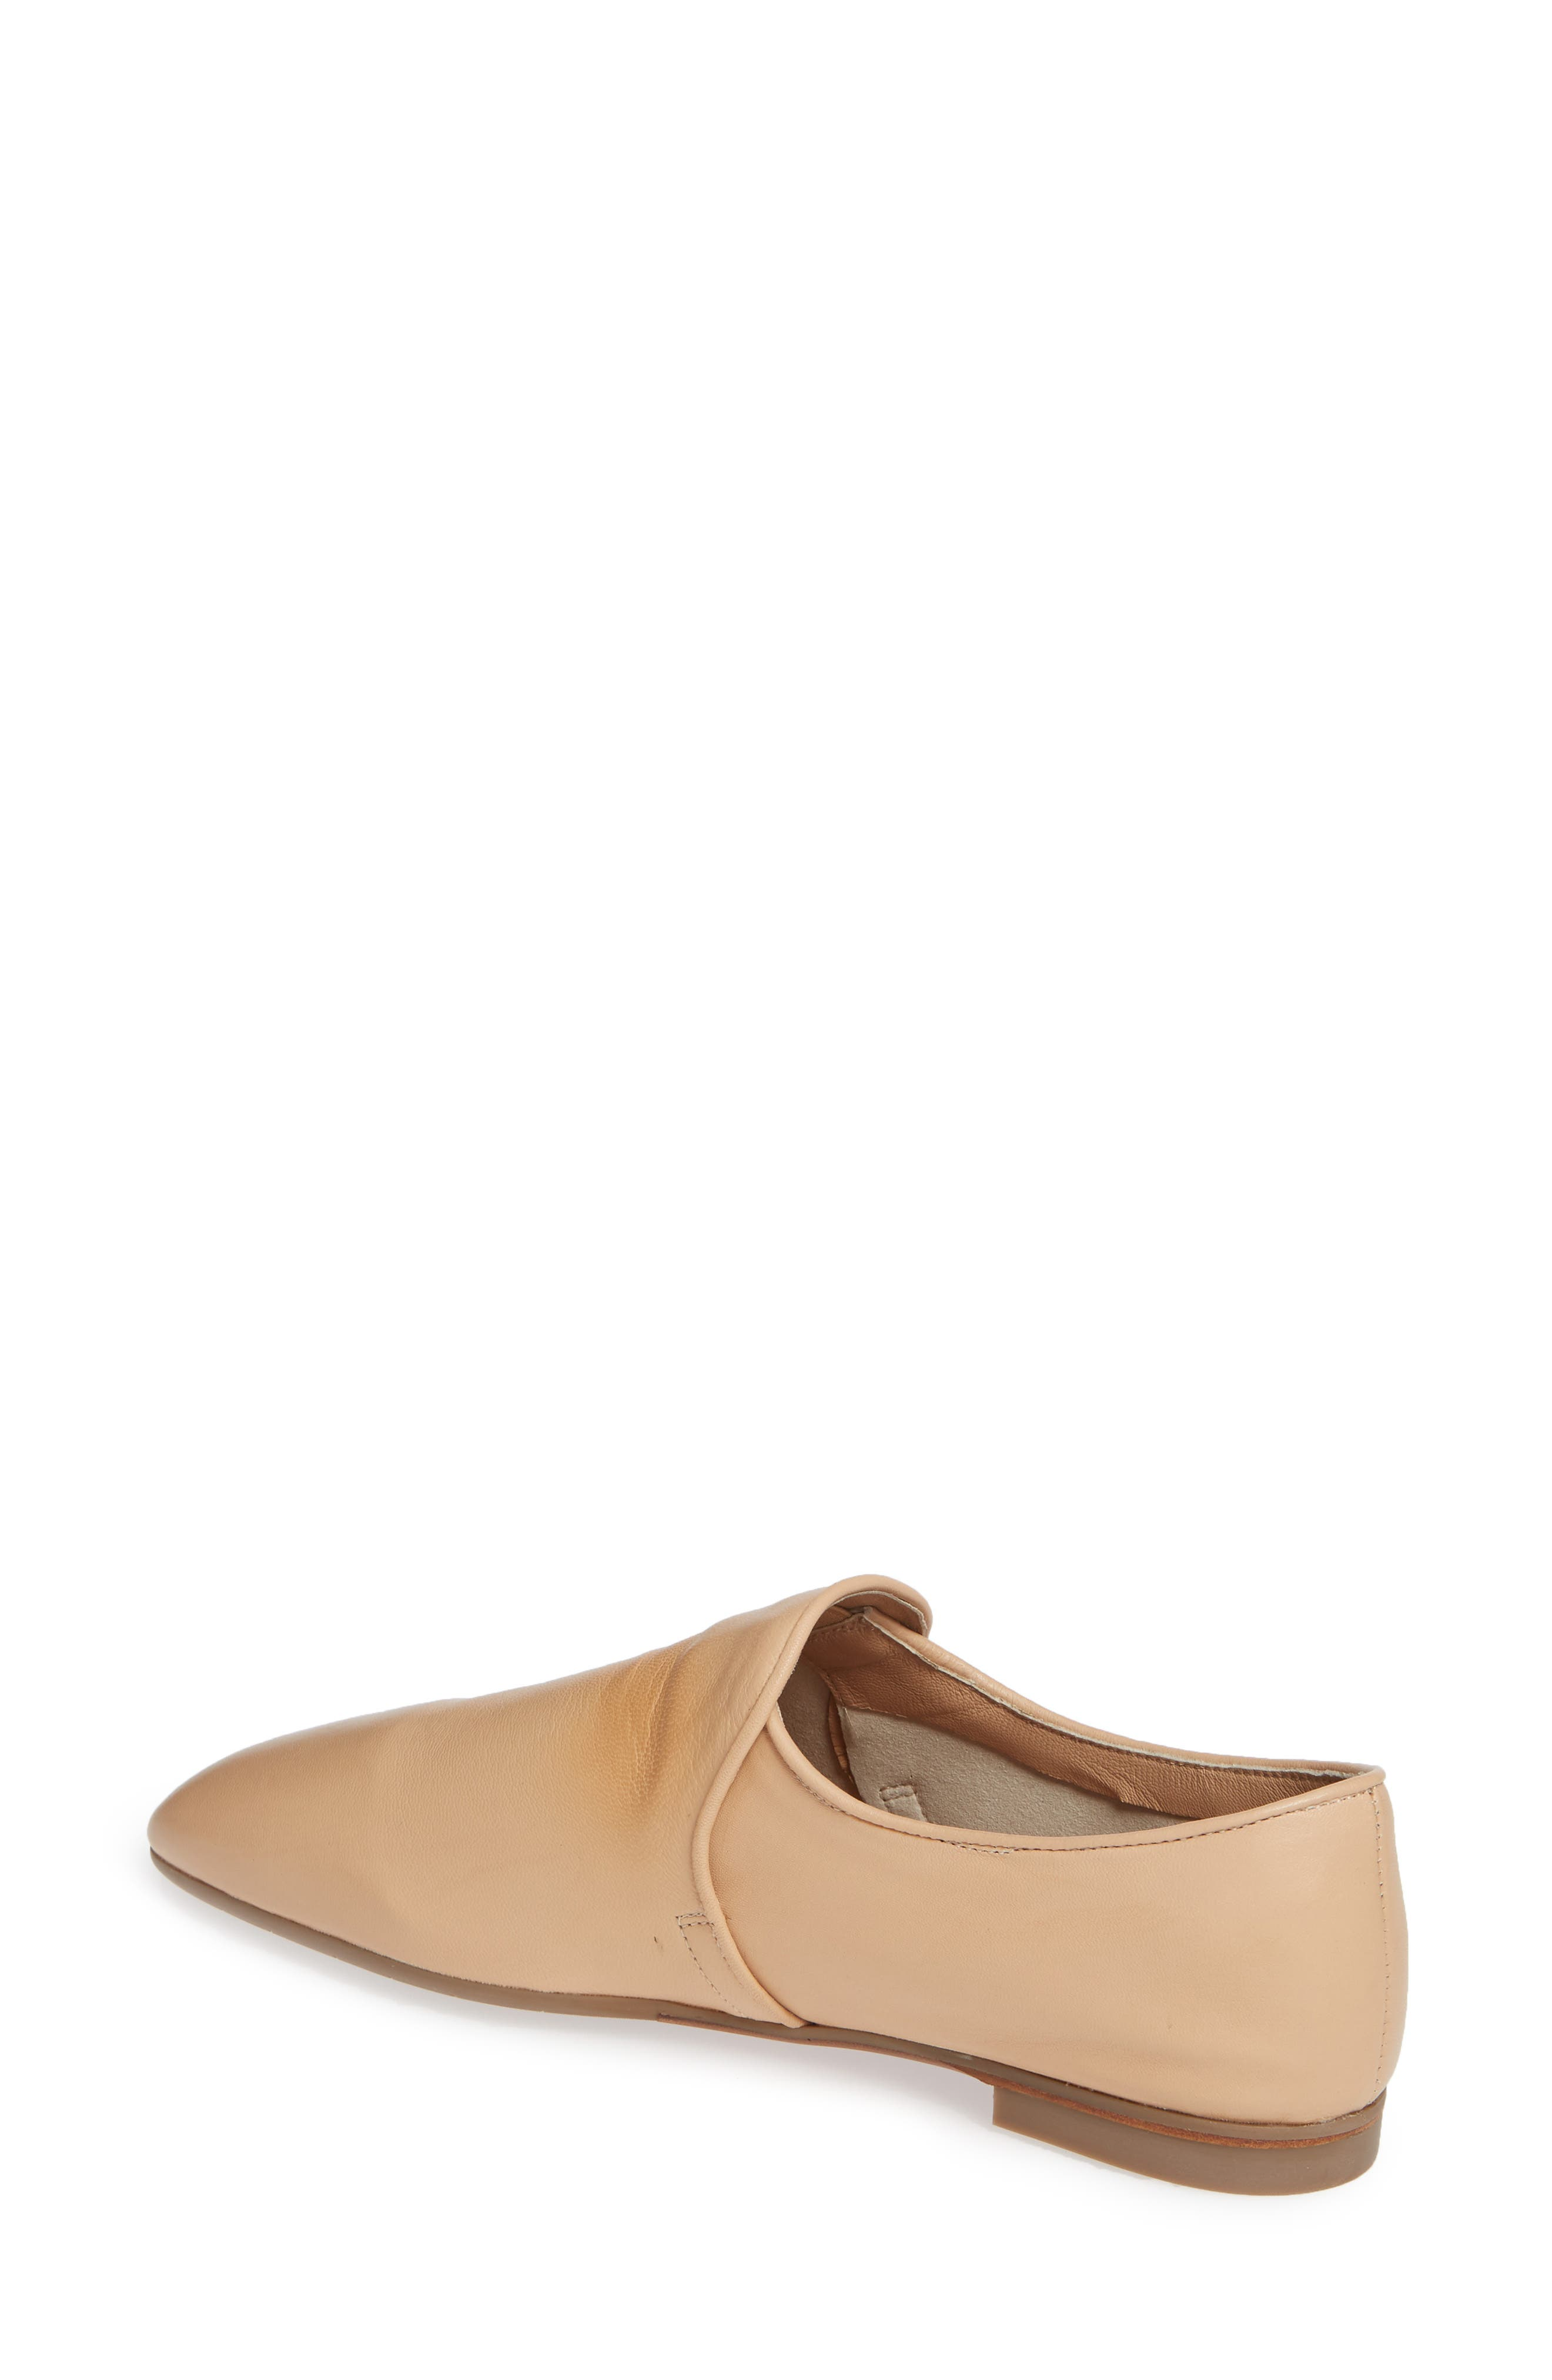 Revy Weatherporoof Loafer,                             Alternate thumbnail 2, color,                             NUDE NAPPA